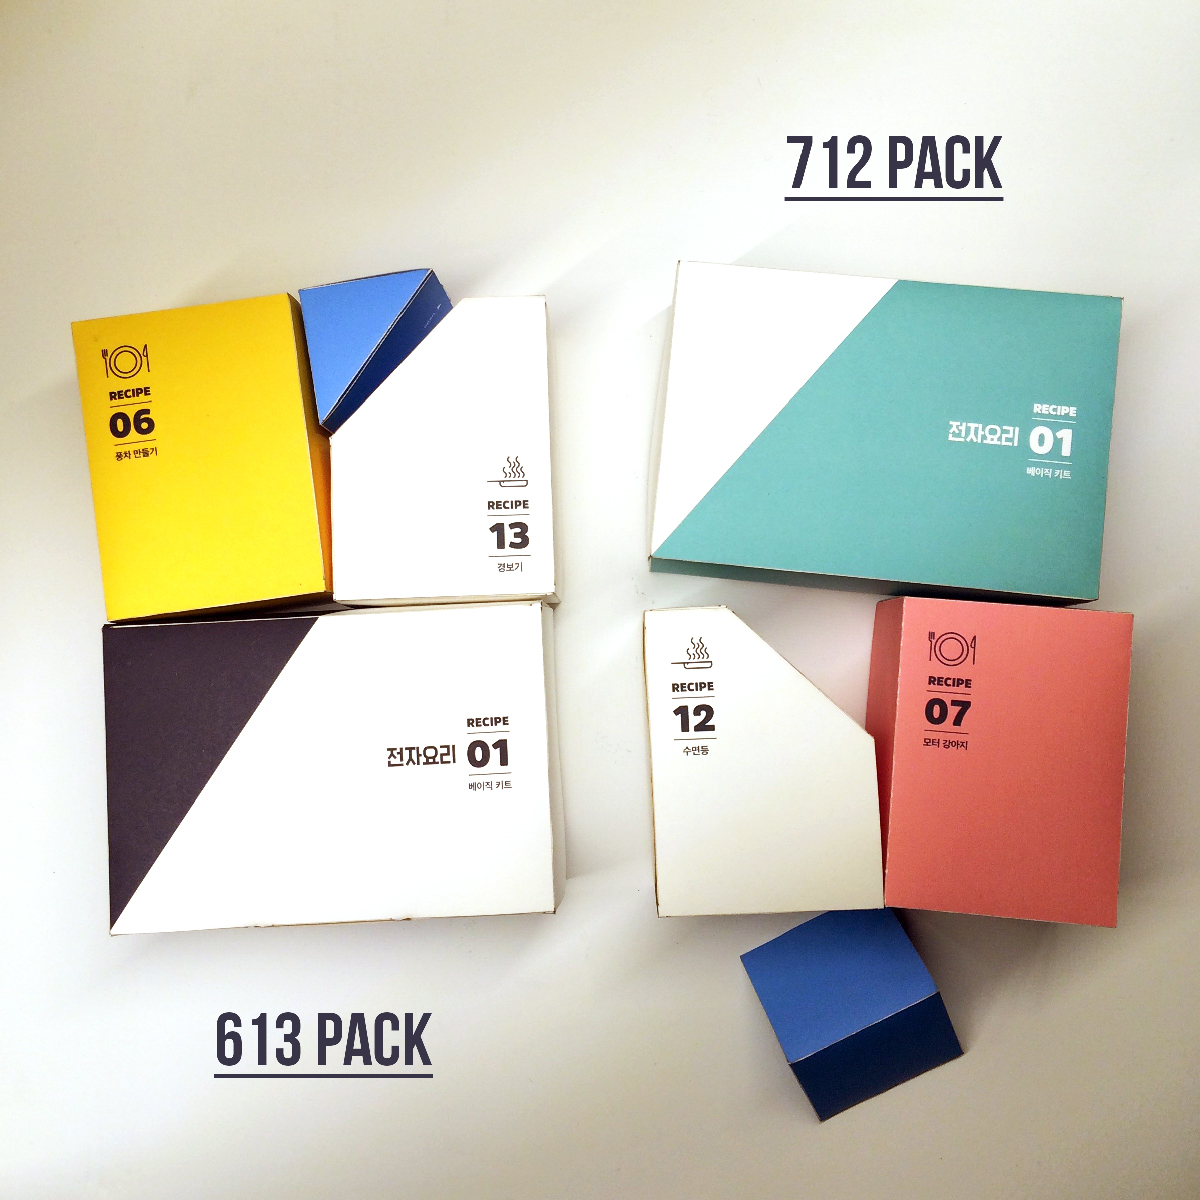 productimg_pack_1200